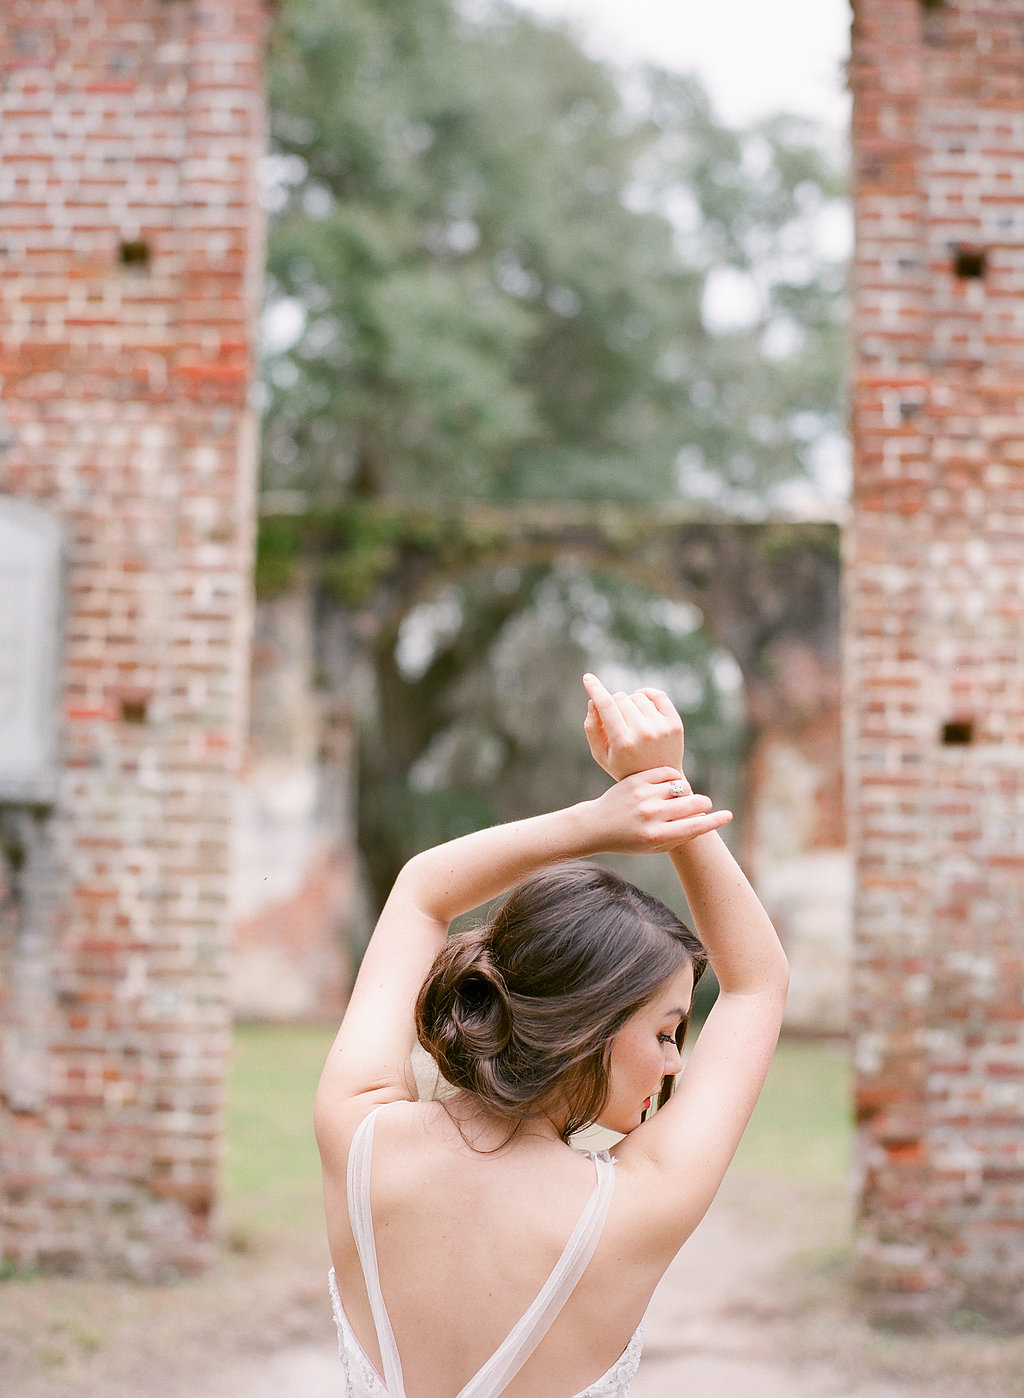 the-happy-bloom-photography-ti-adora-7553-ivory-and-beau-bridal-boutique-savannah-wedding-dresses-old-sheldon-ruins-savannah-wedding-planner-savannah-event-designer-savannah-weddings-savannah-film-photographer-savannah-photography-workshop-5.jpg